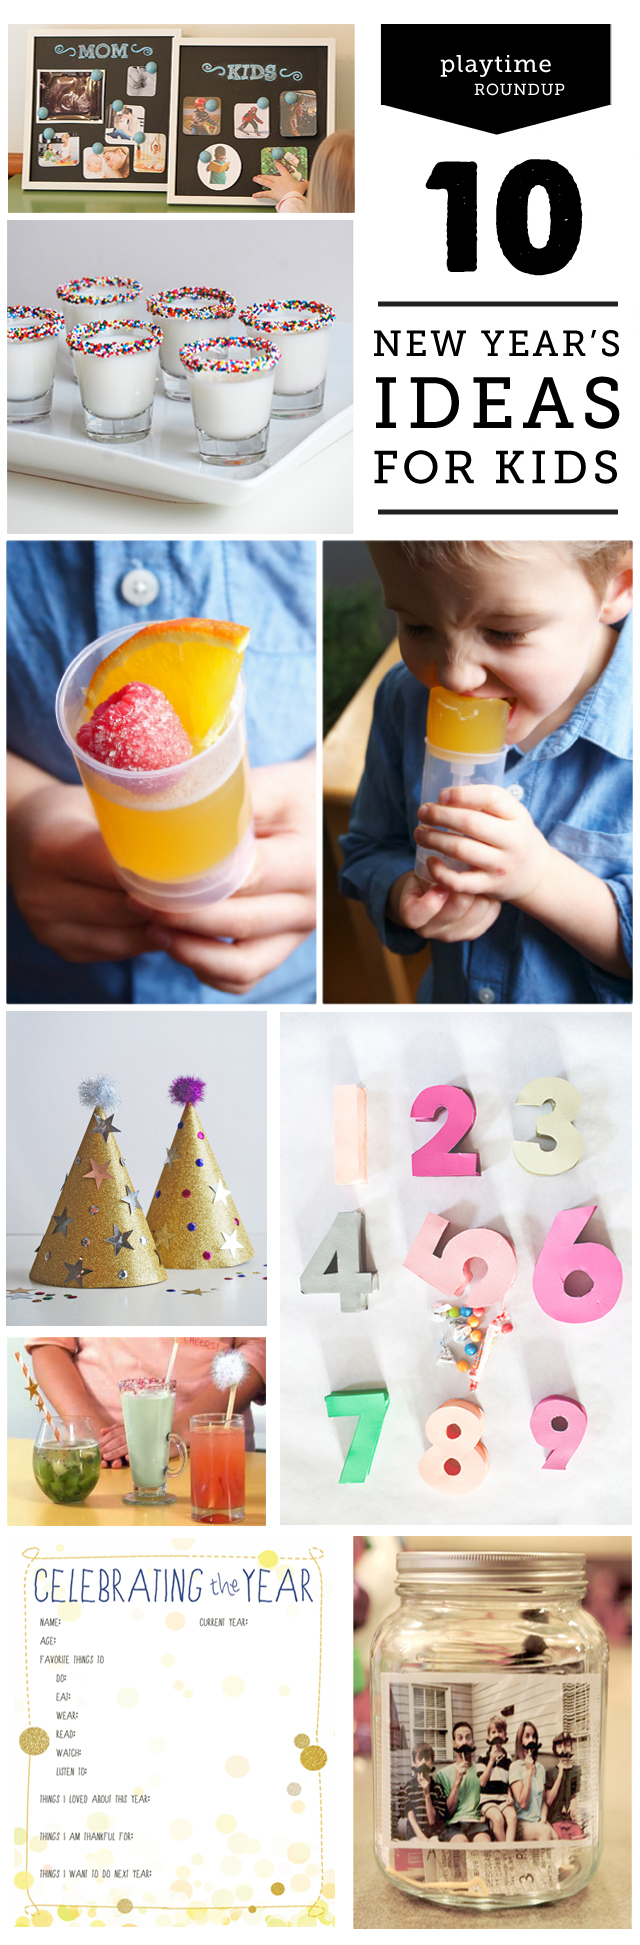 Top 10 Ways For Families To Celebrate New Year S Eve